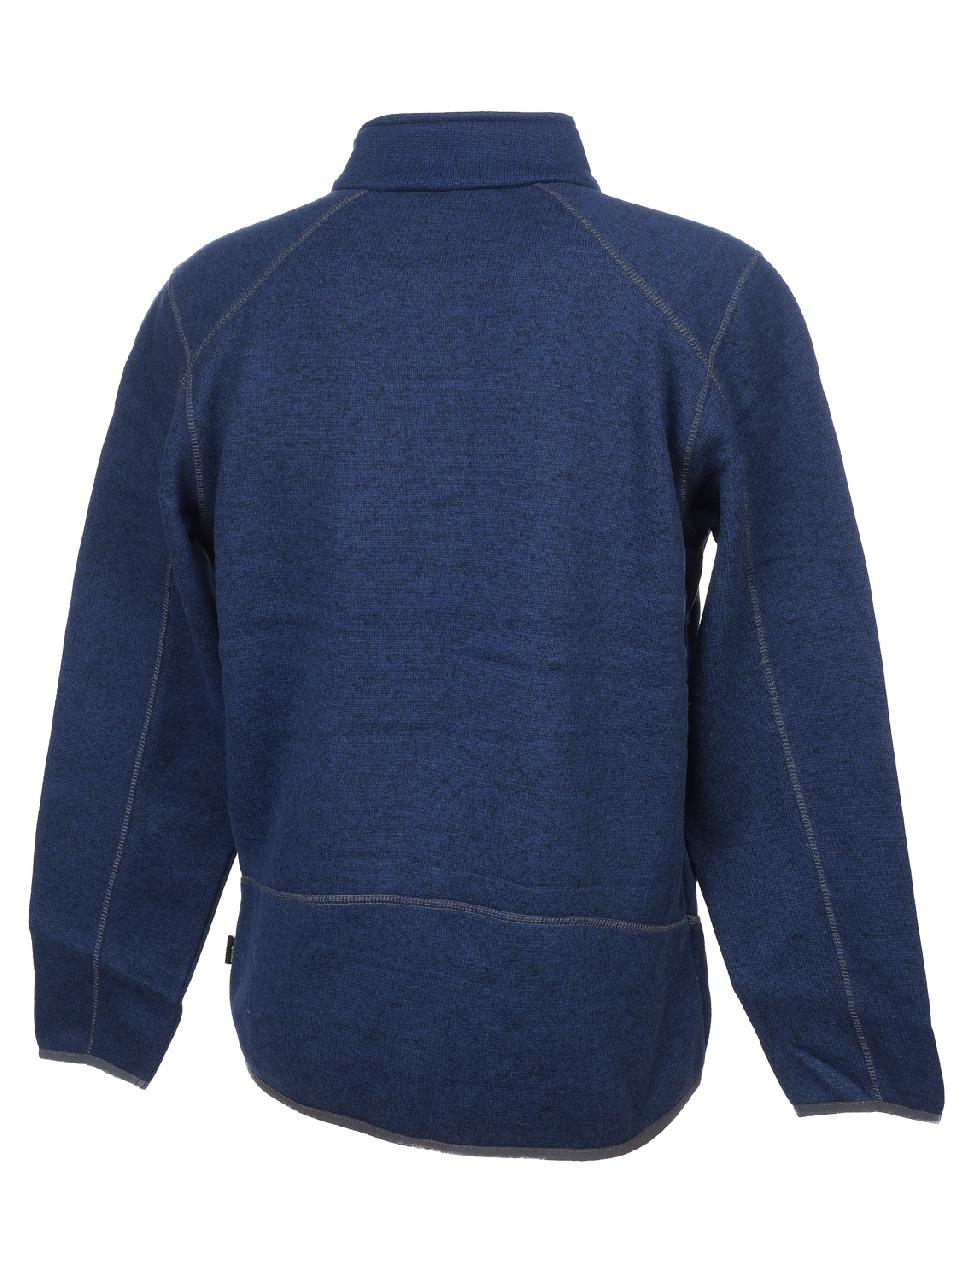 Jackets-Sweaters-Zip-Eldera-Sportswear-Croket-Navy-Ch-Fz-Vest-Blue-59840-New thumbnail 5